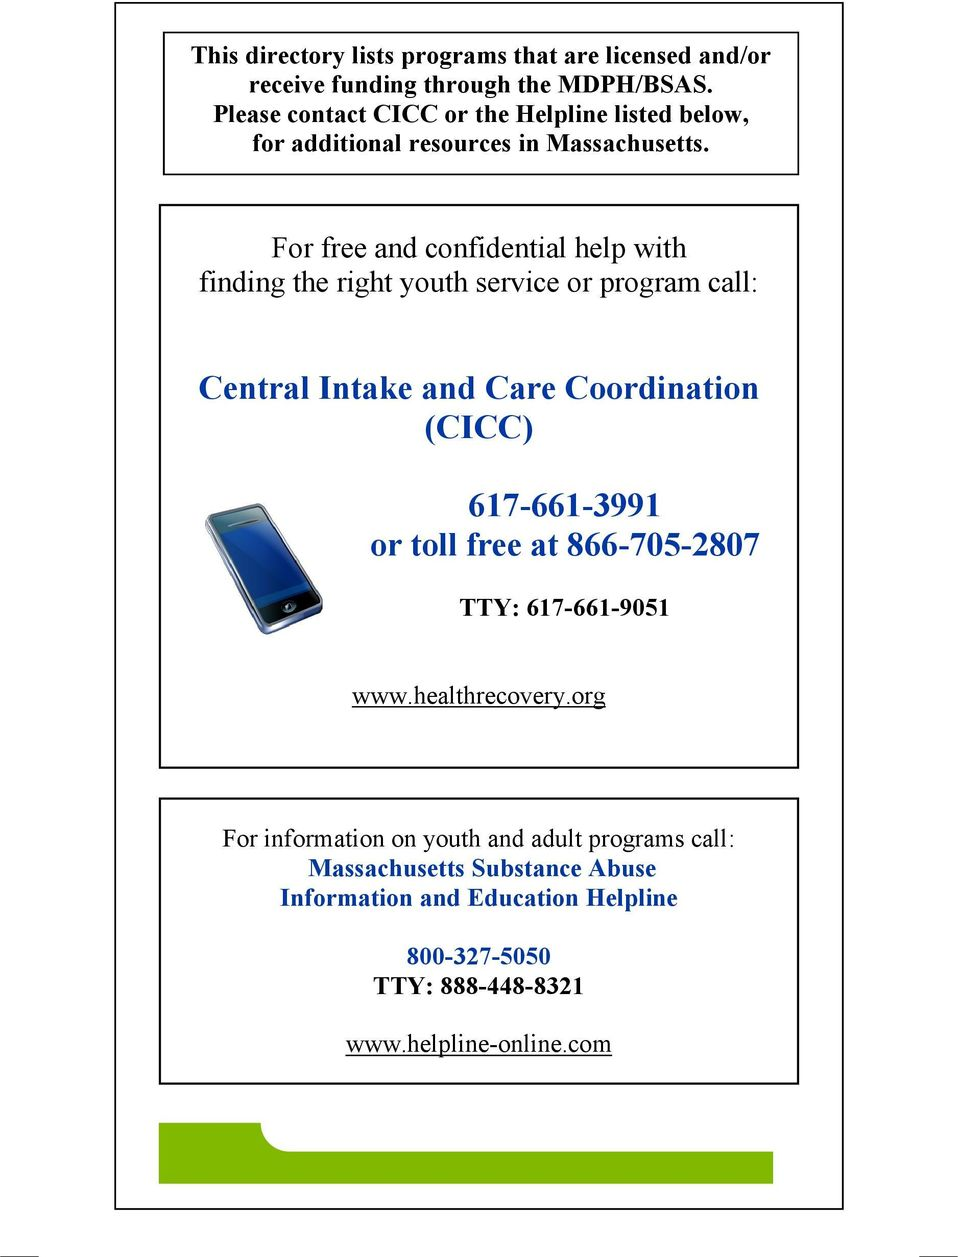 For free and confidential help with finding the right youth service or program call: Central Intake and Care Coordination (CICC) 617-661-3991